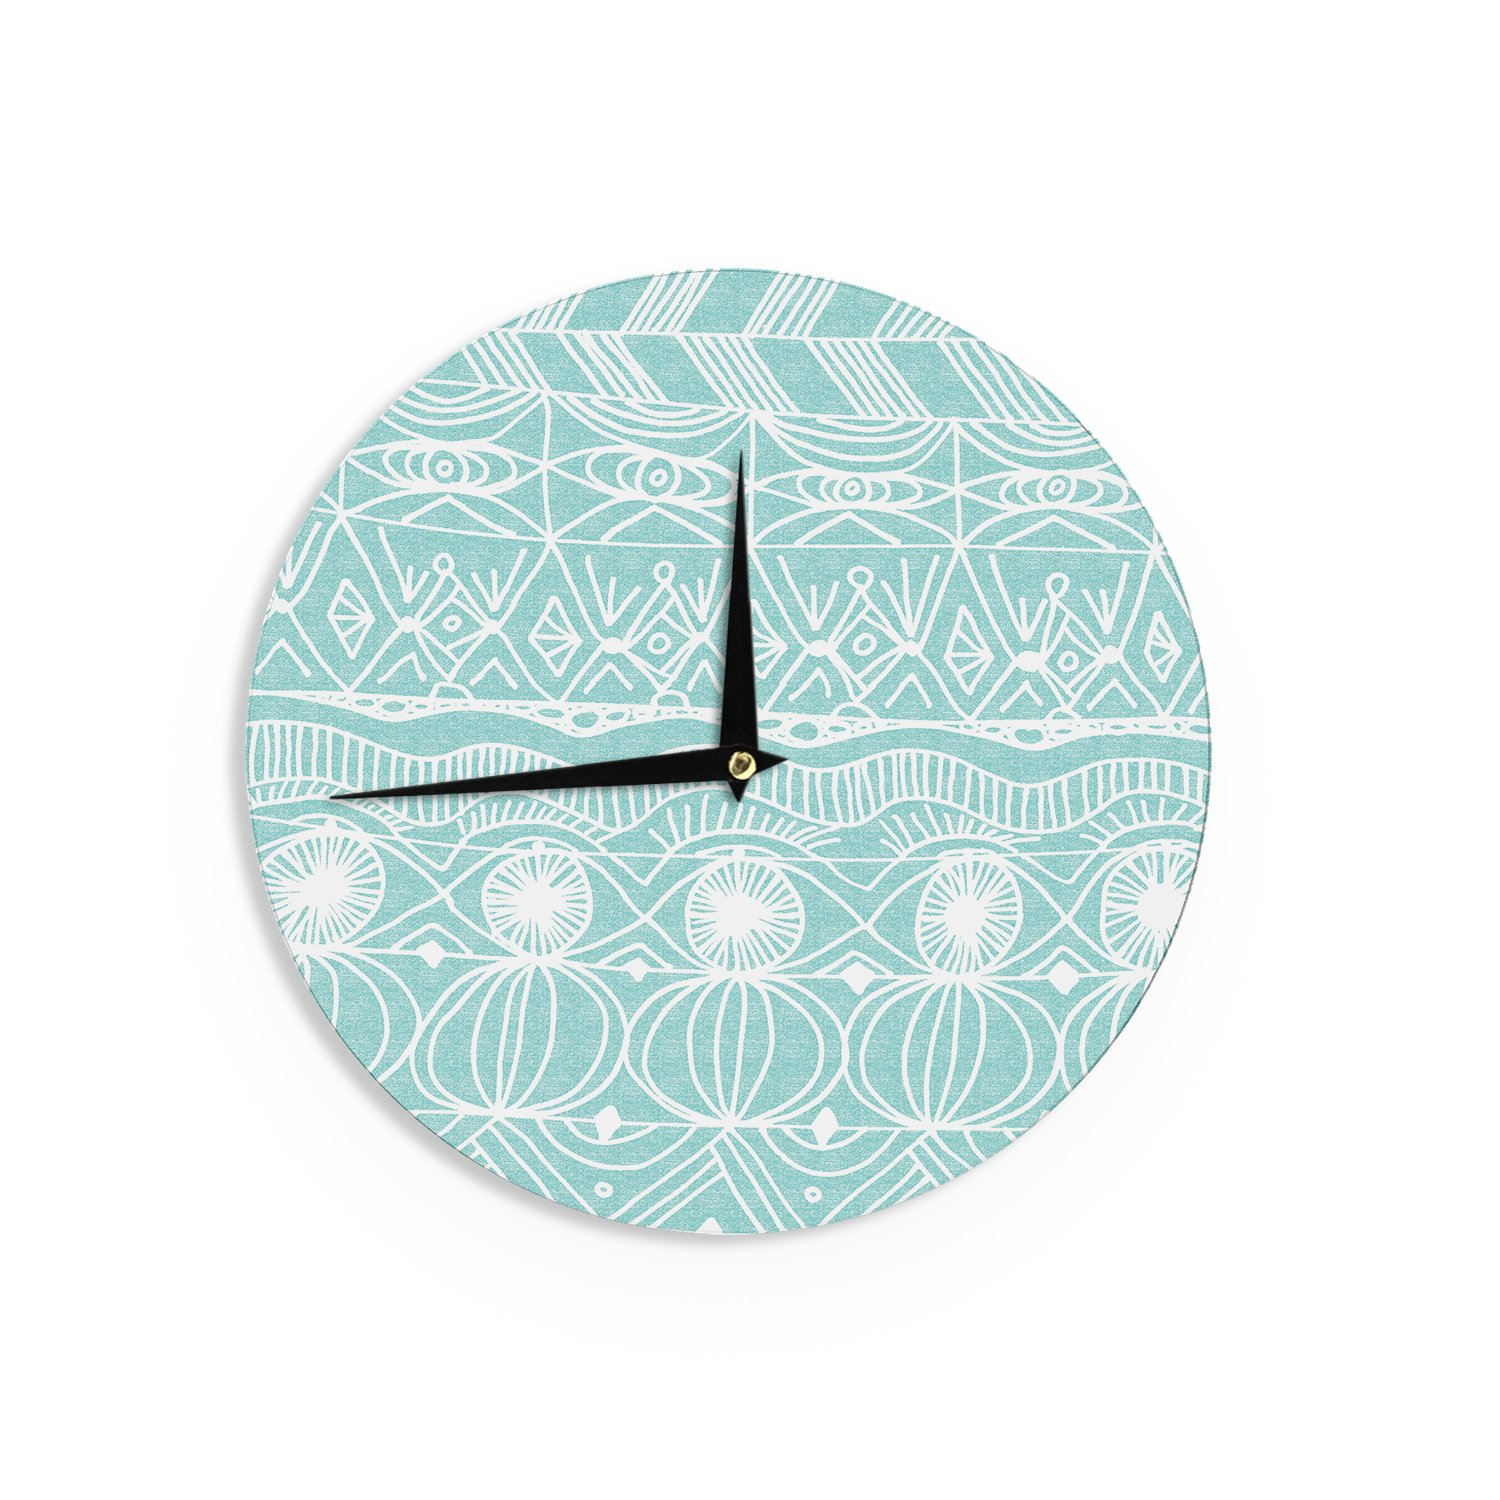 KESS InHouse Catherine Holcombe ''Beach Blanket Bingo'' Wall Clock, 12'' by Kess InHouse